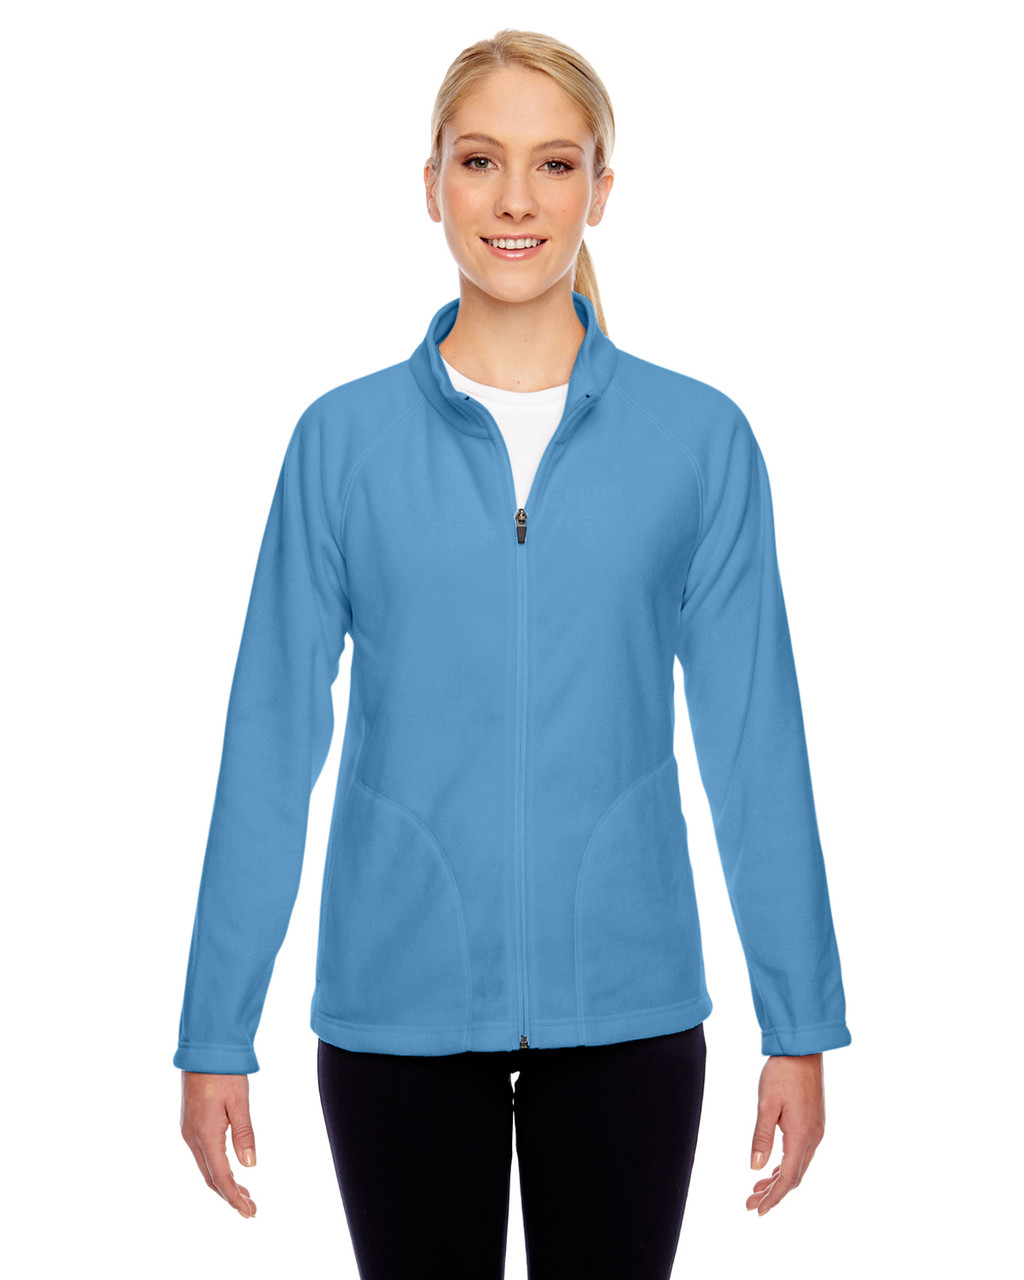 Light Blue - TT90W Team 365 Ladies' Campus Microfleece Jacket | BlankClothing.ca